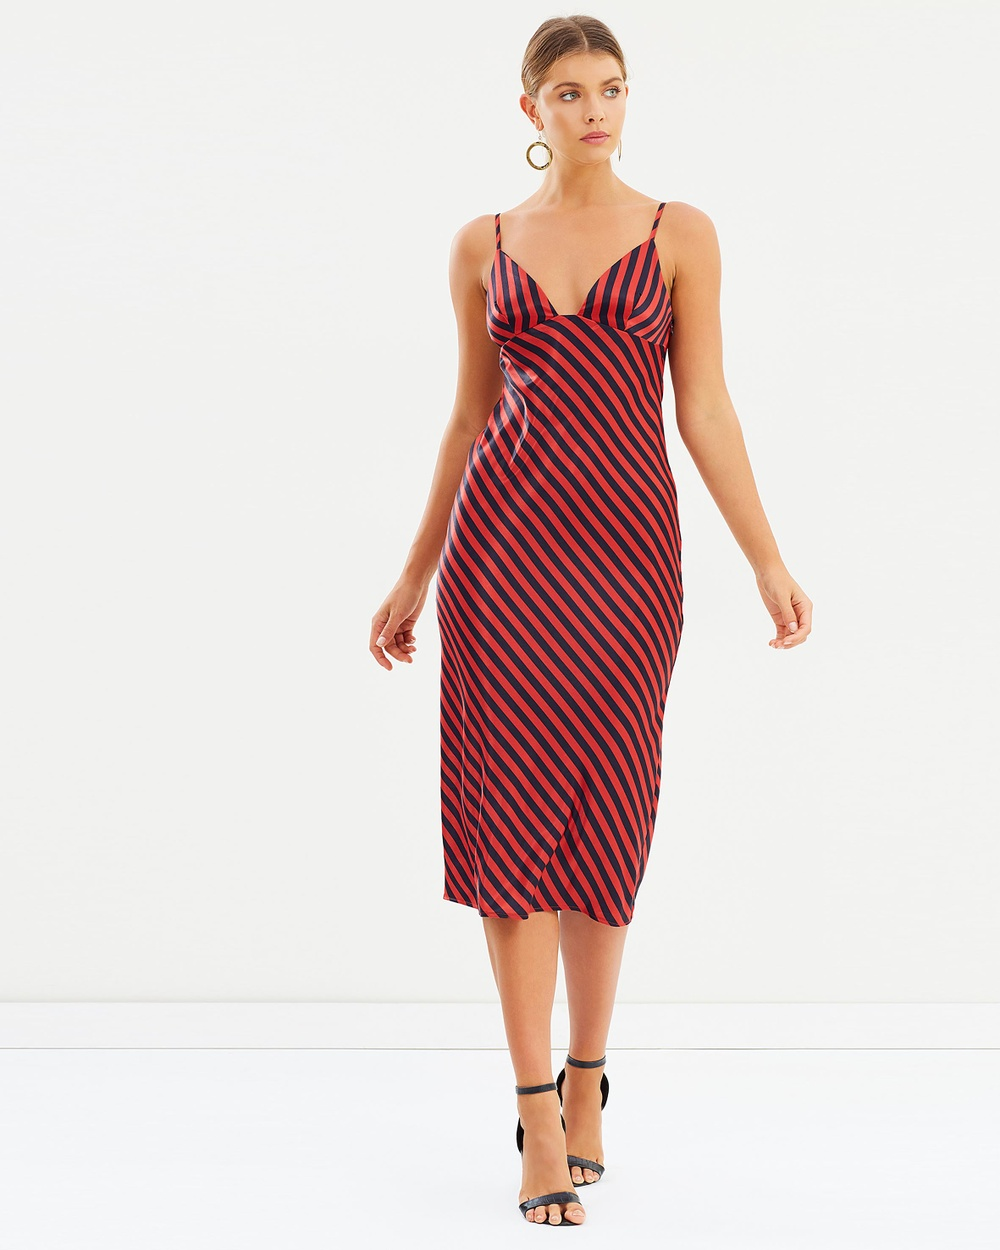 Shona Joy Bias Slip Midi Dresses Navy & Red Bias Slip Midi